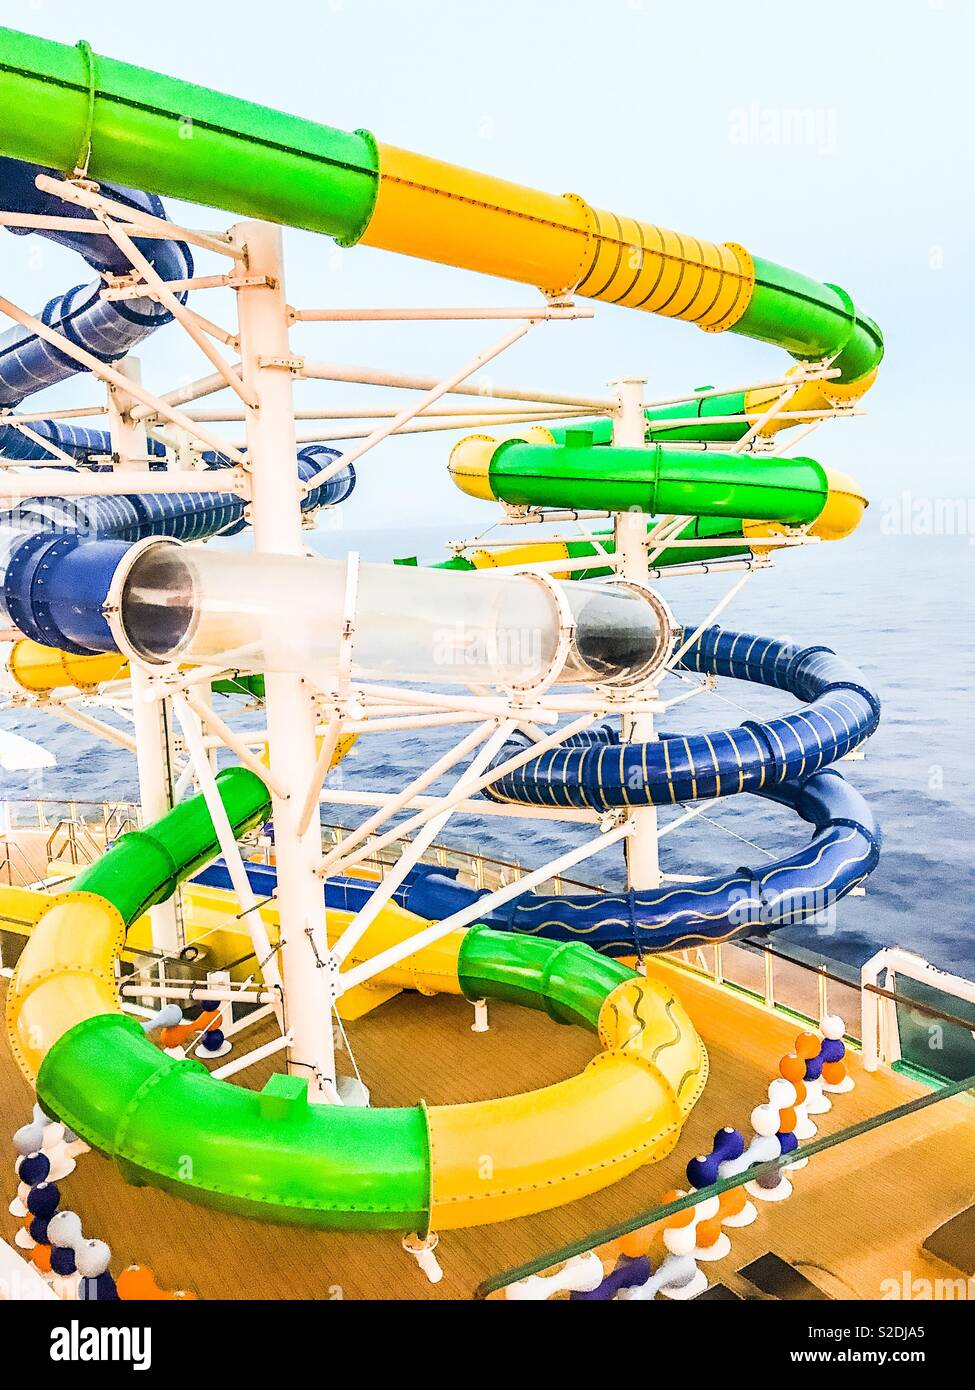 Slides on Independence of the Seas cruise ship - Stock Image